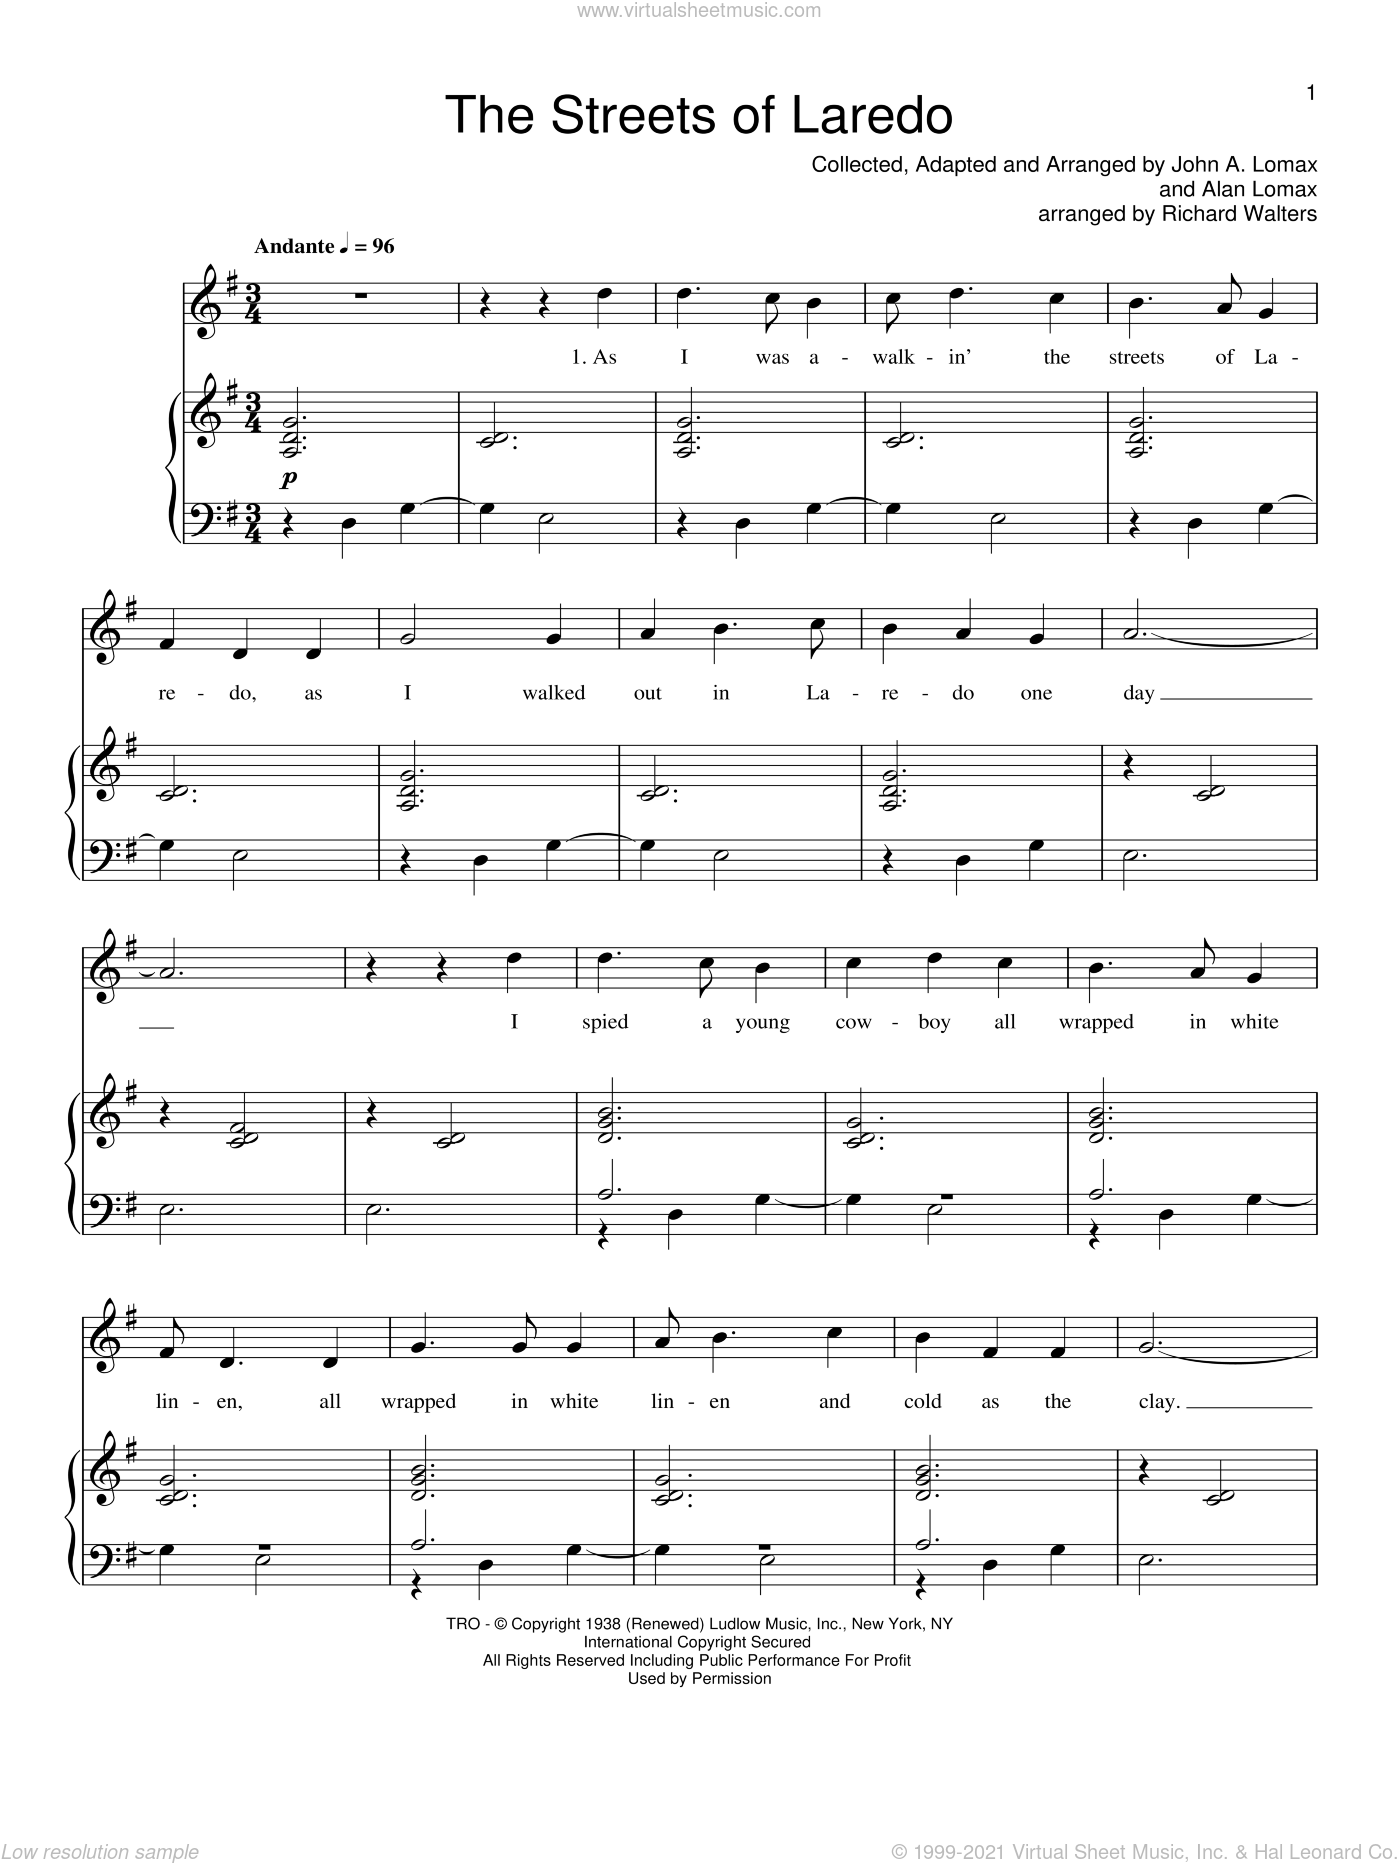 The Streets Of Laredo sheet music for voice, piano or guitar  and Johnny Cash, intermediate skill level